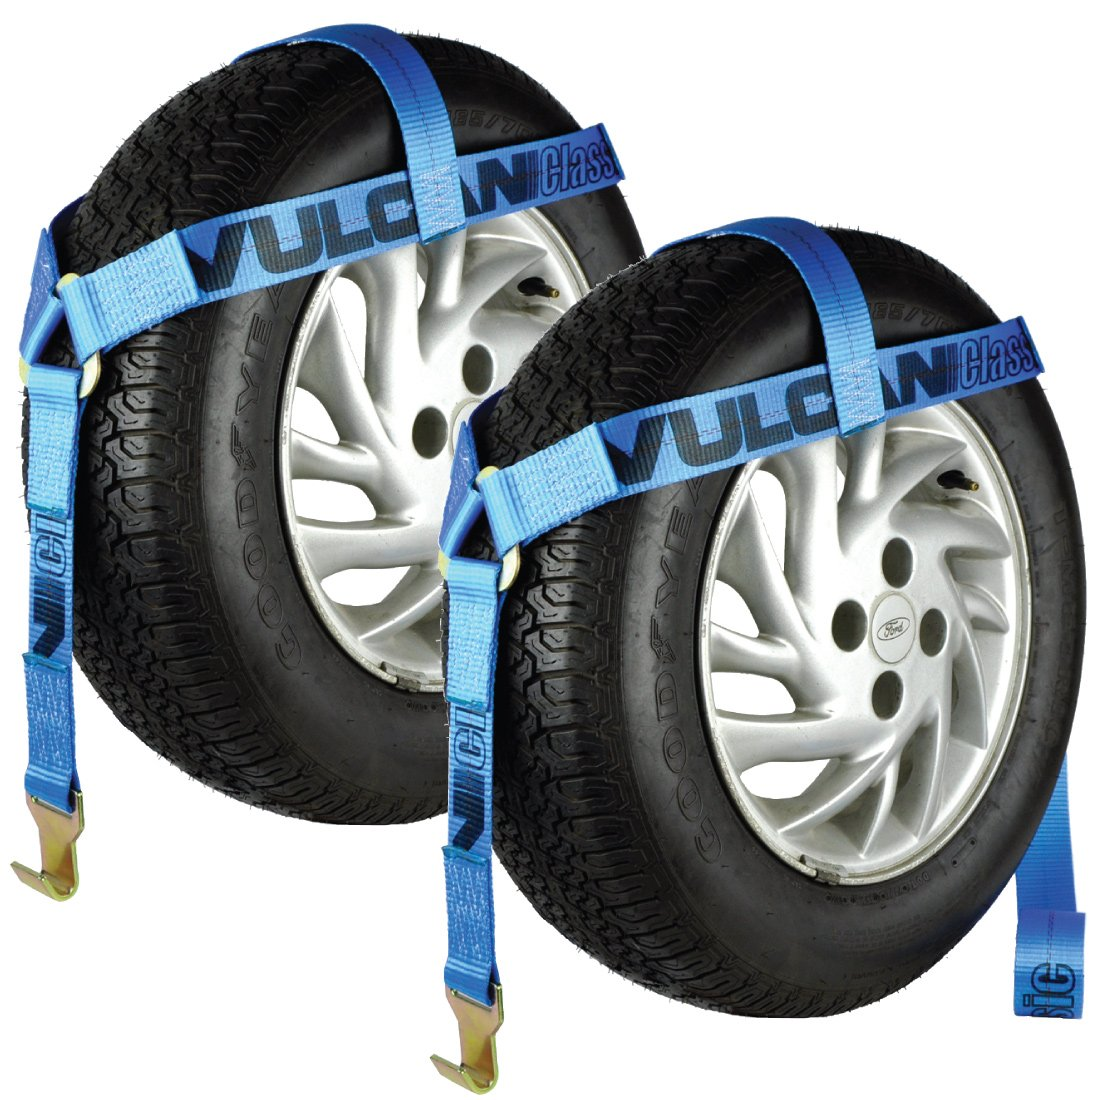 Vulcan Car Dolly Tire Harness Blue - 2 pack